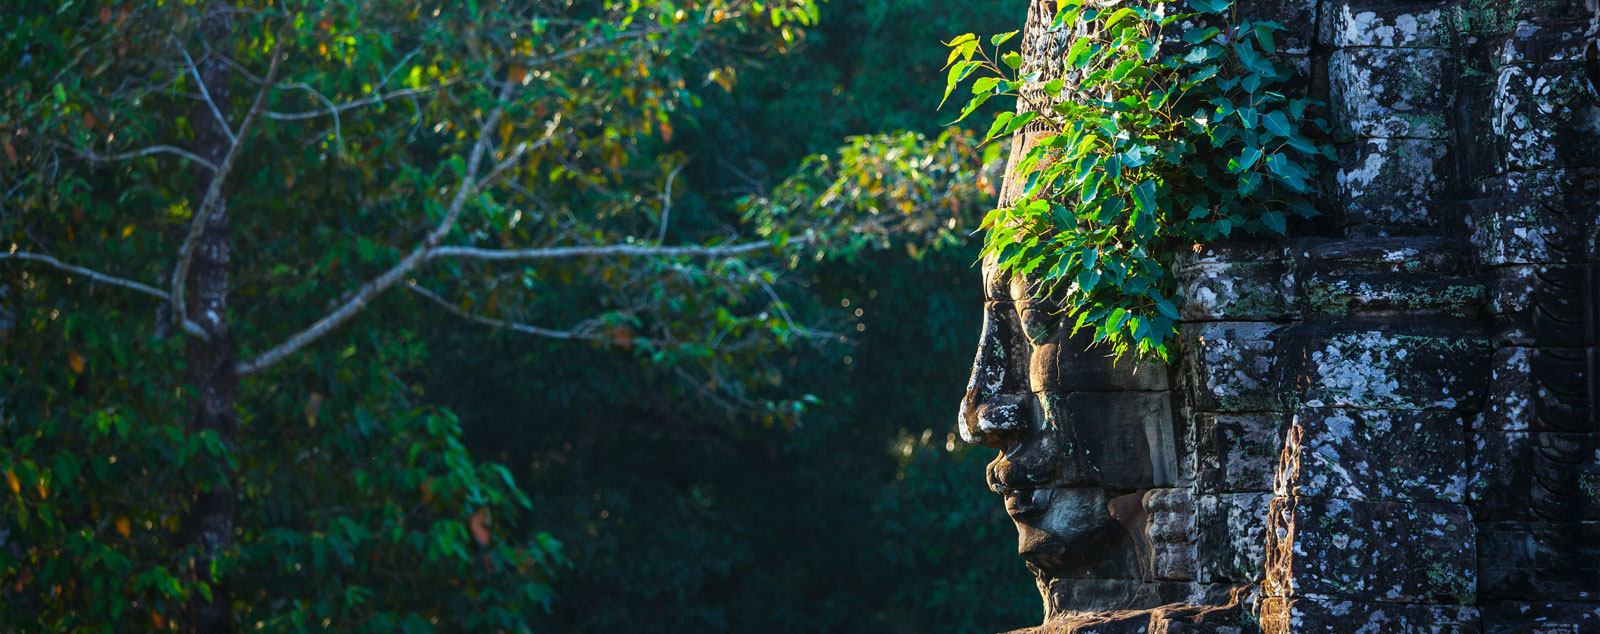 The side of a Khmer head carved from stone on the side of a temple surrounded by green forest